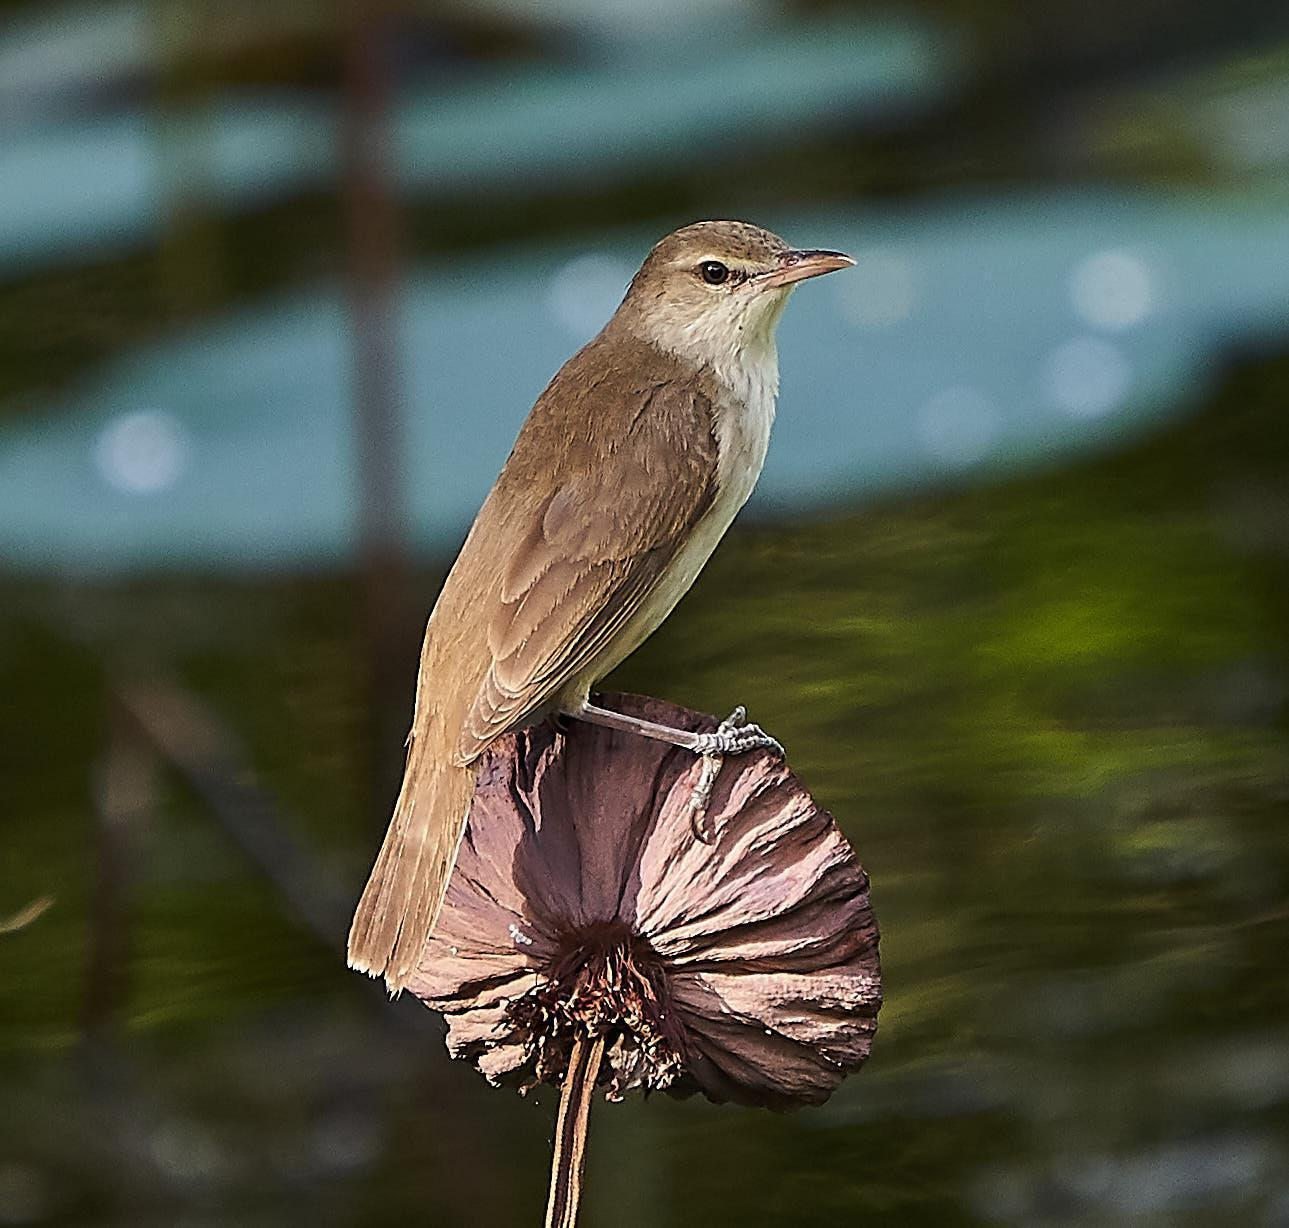 Oriental Reed Warbler Photo by Steven Cheong